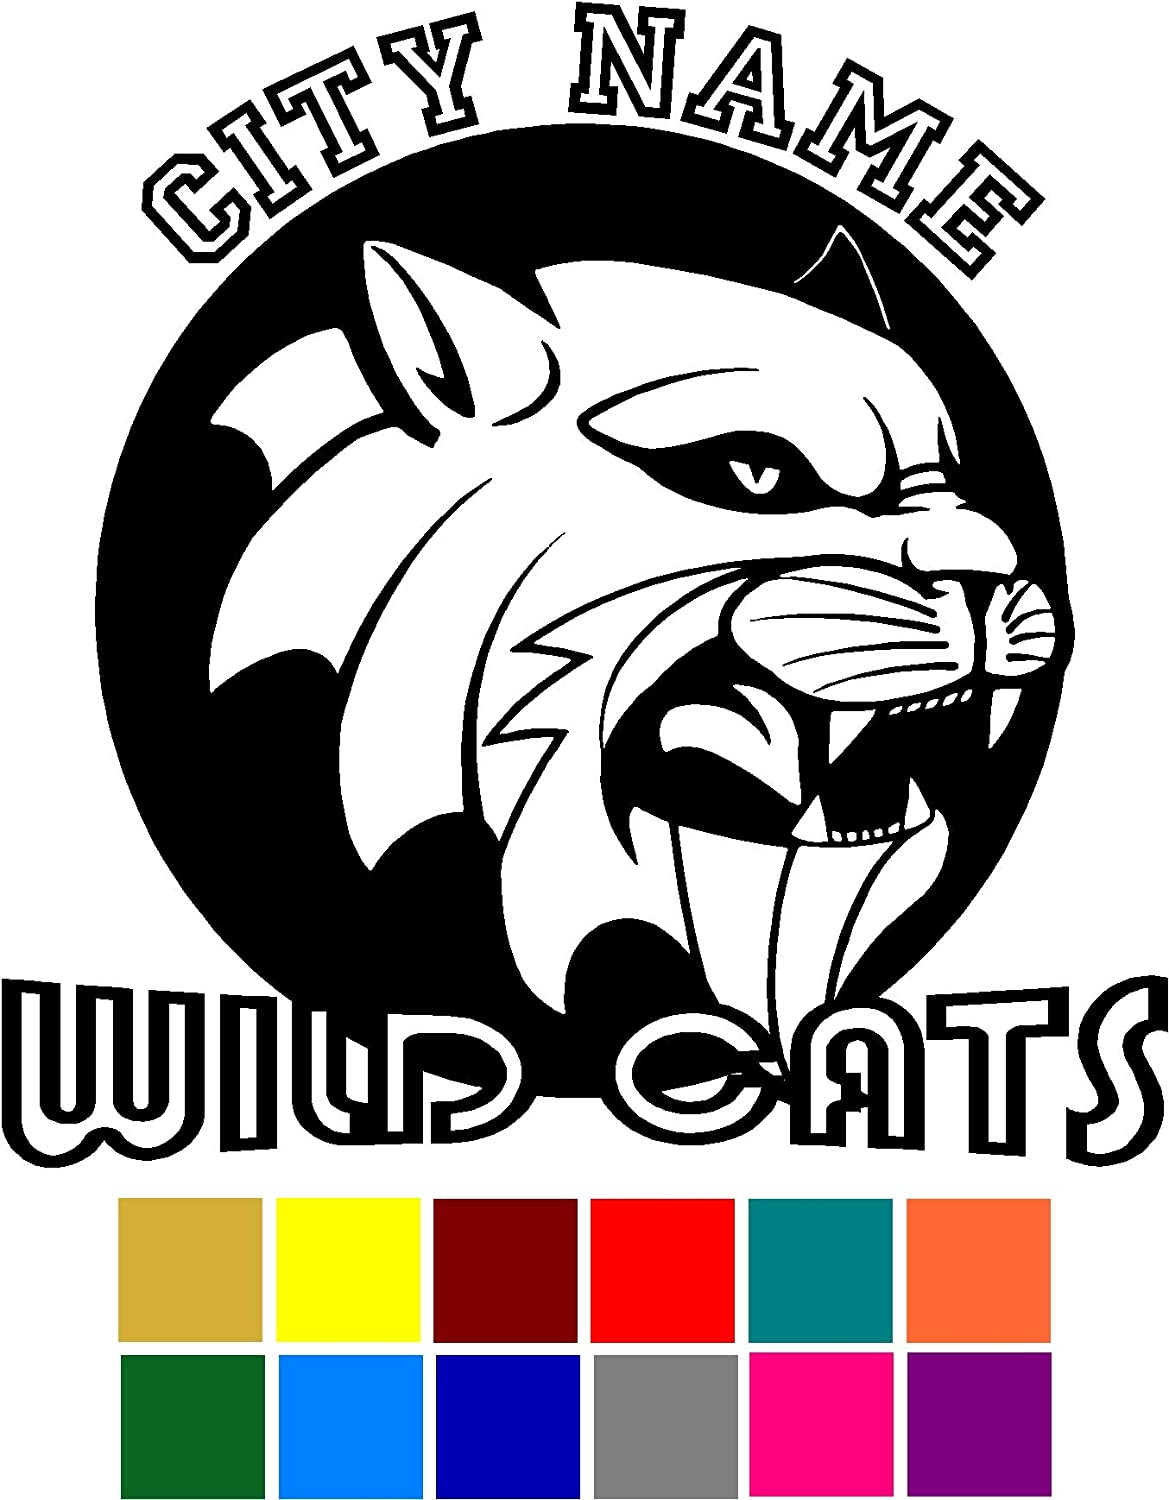 Wild Cats Sport Team Mascot City Name Circle Custom Customize Decal Sticker Vinyl Car Window Tumblers Wall Laptops Cellphones Phones Tablets Ipads Helmets Motorcycles V and T Gifts